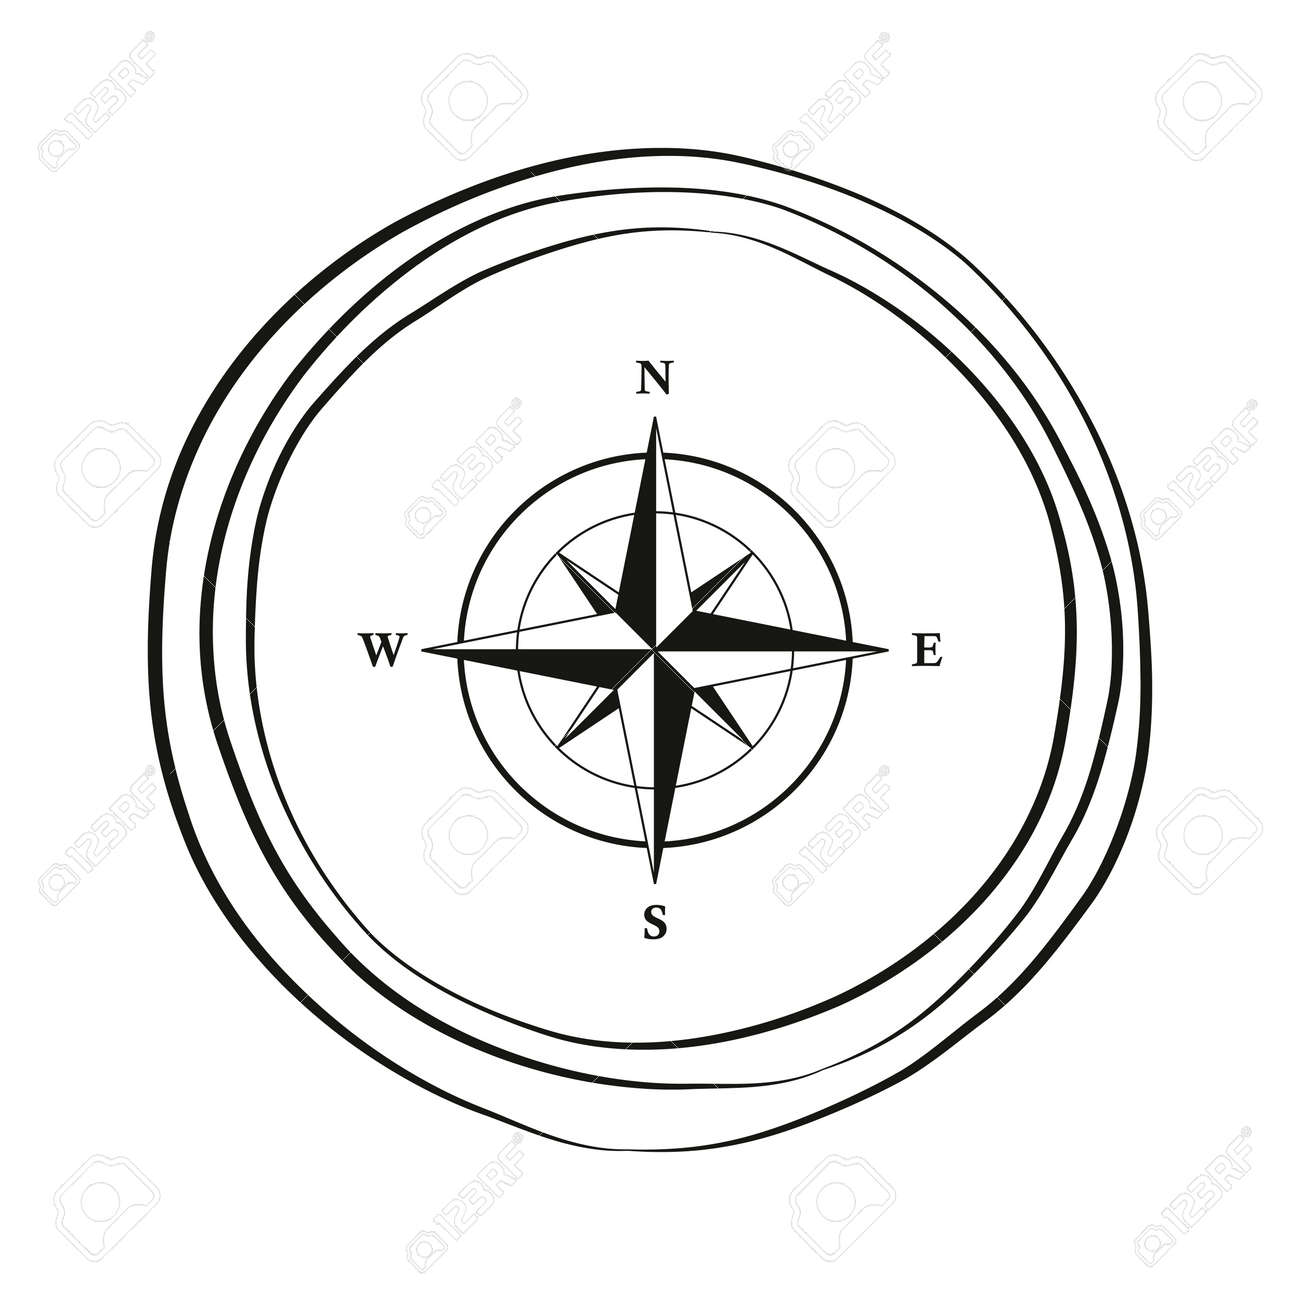 compass wind rose travel graphic on white background - 169232472